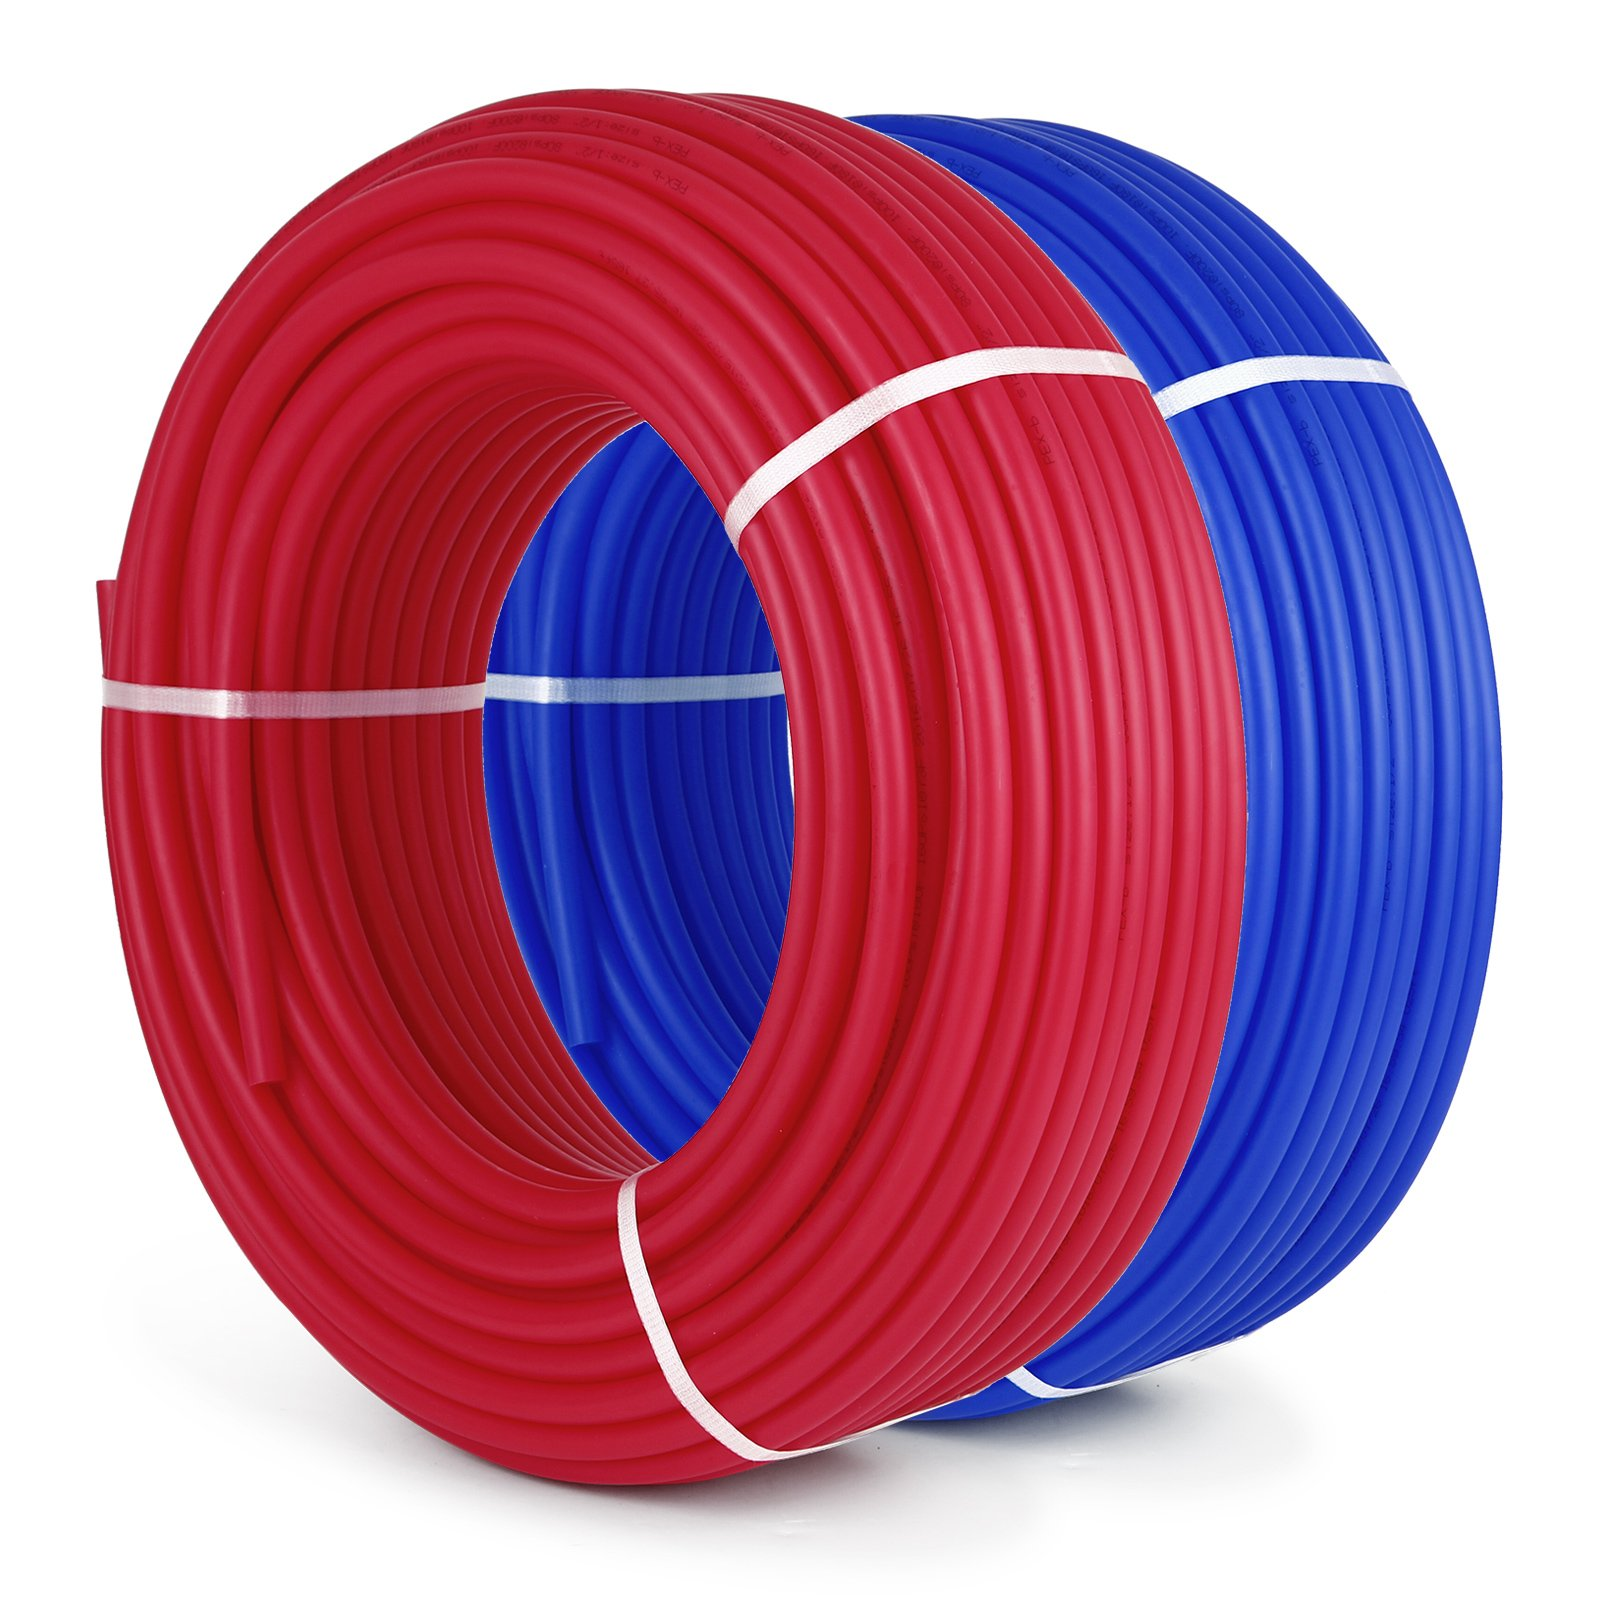 OrangeA PEX Tubing 1/2 Inch Potable Water Pipe 2 Rolls X 300Ft Tube Coil PEX-B Non Oxygen Barrier Piping for Hot Cold Plumbing and Radiant Floor Heating Applications by OrangeA (Image #1)